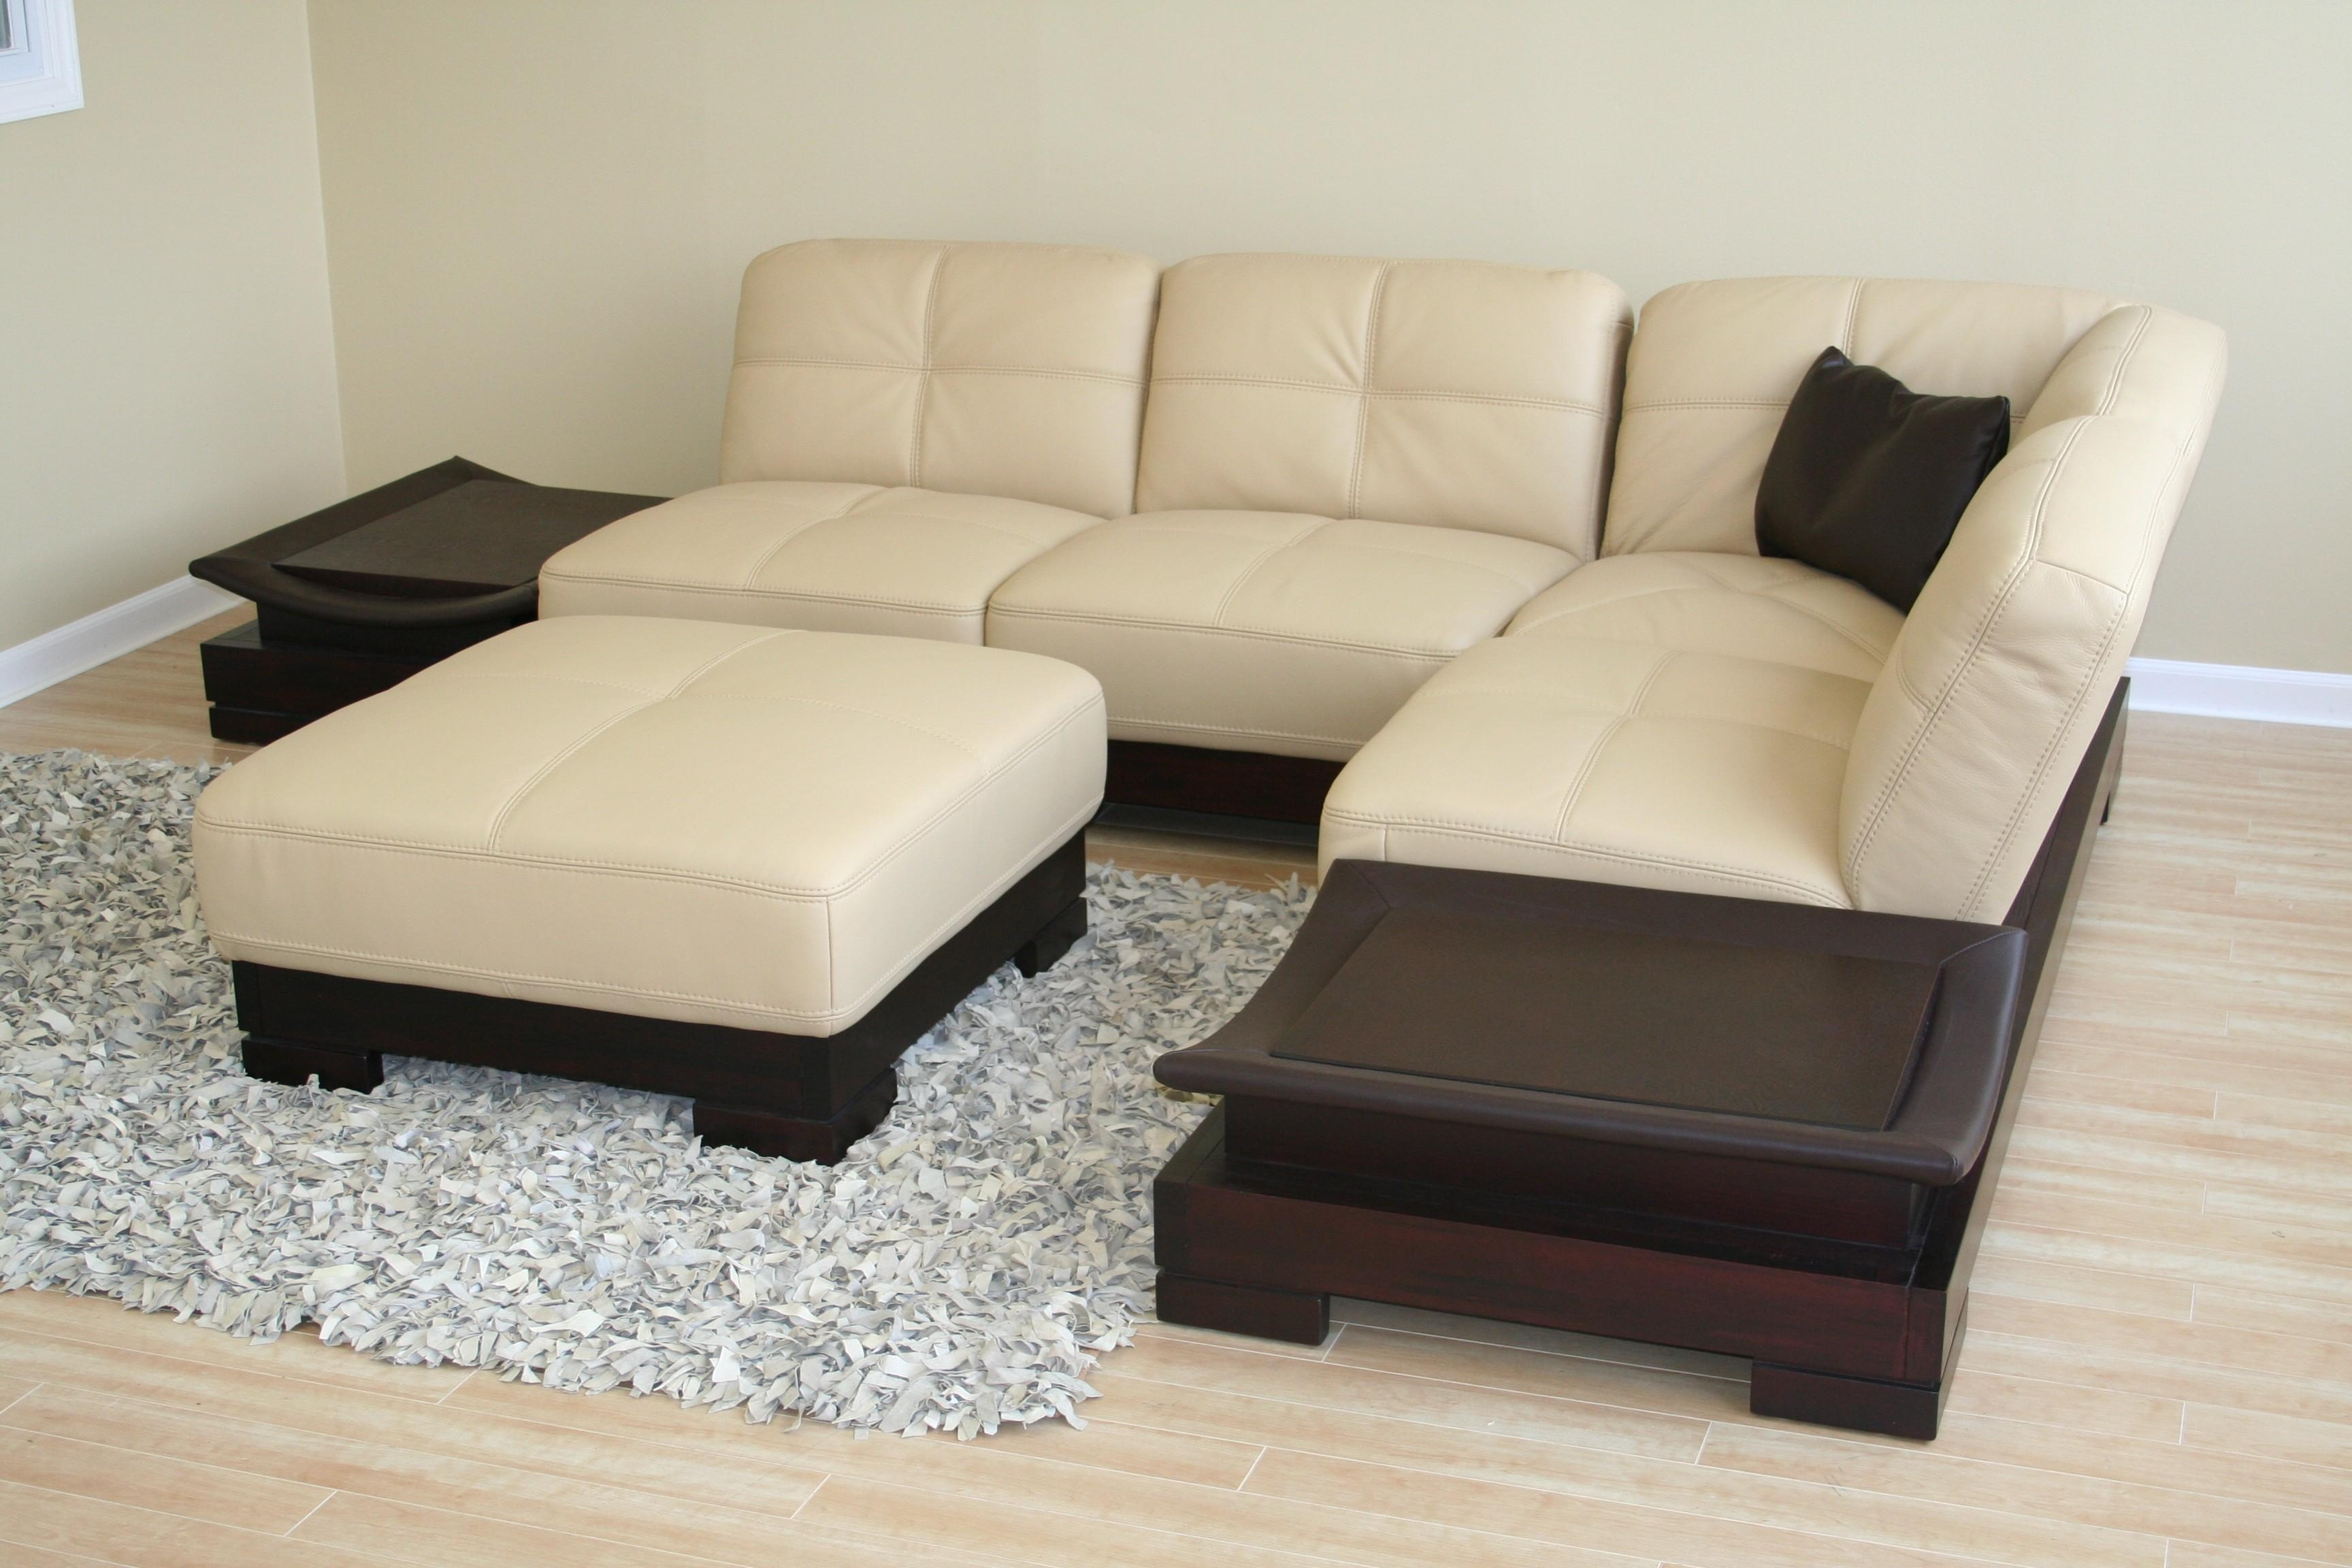 Small Scale Sofa With Chaise   Tehranmix Decoration Within Small Scale Sofas (Image 14 of 20)